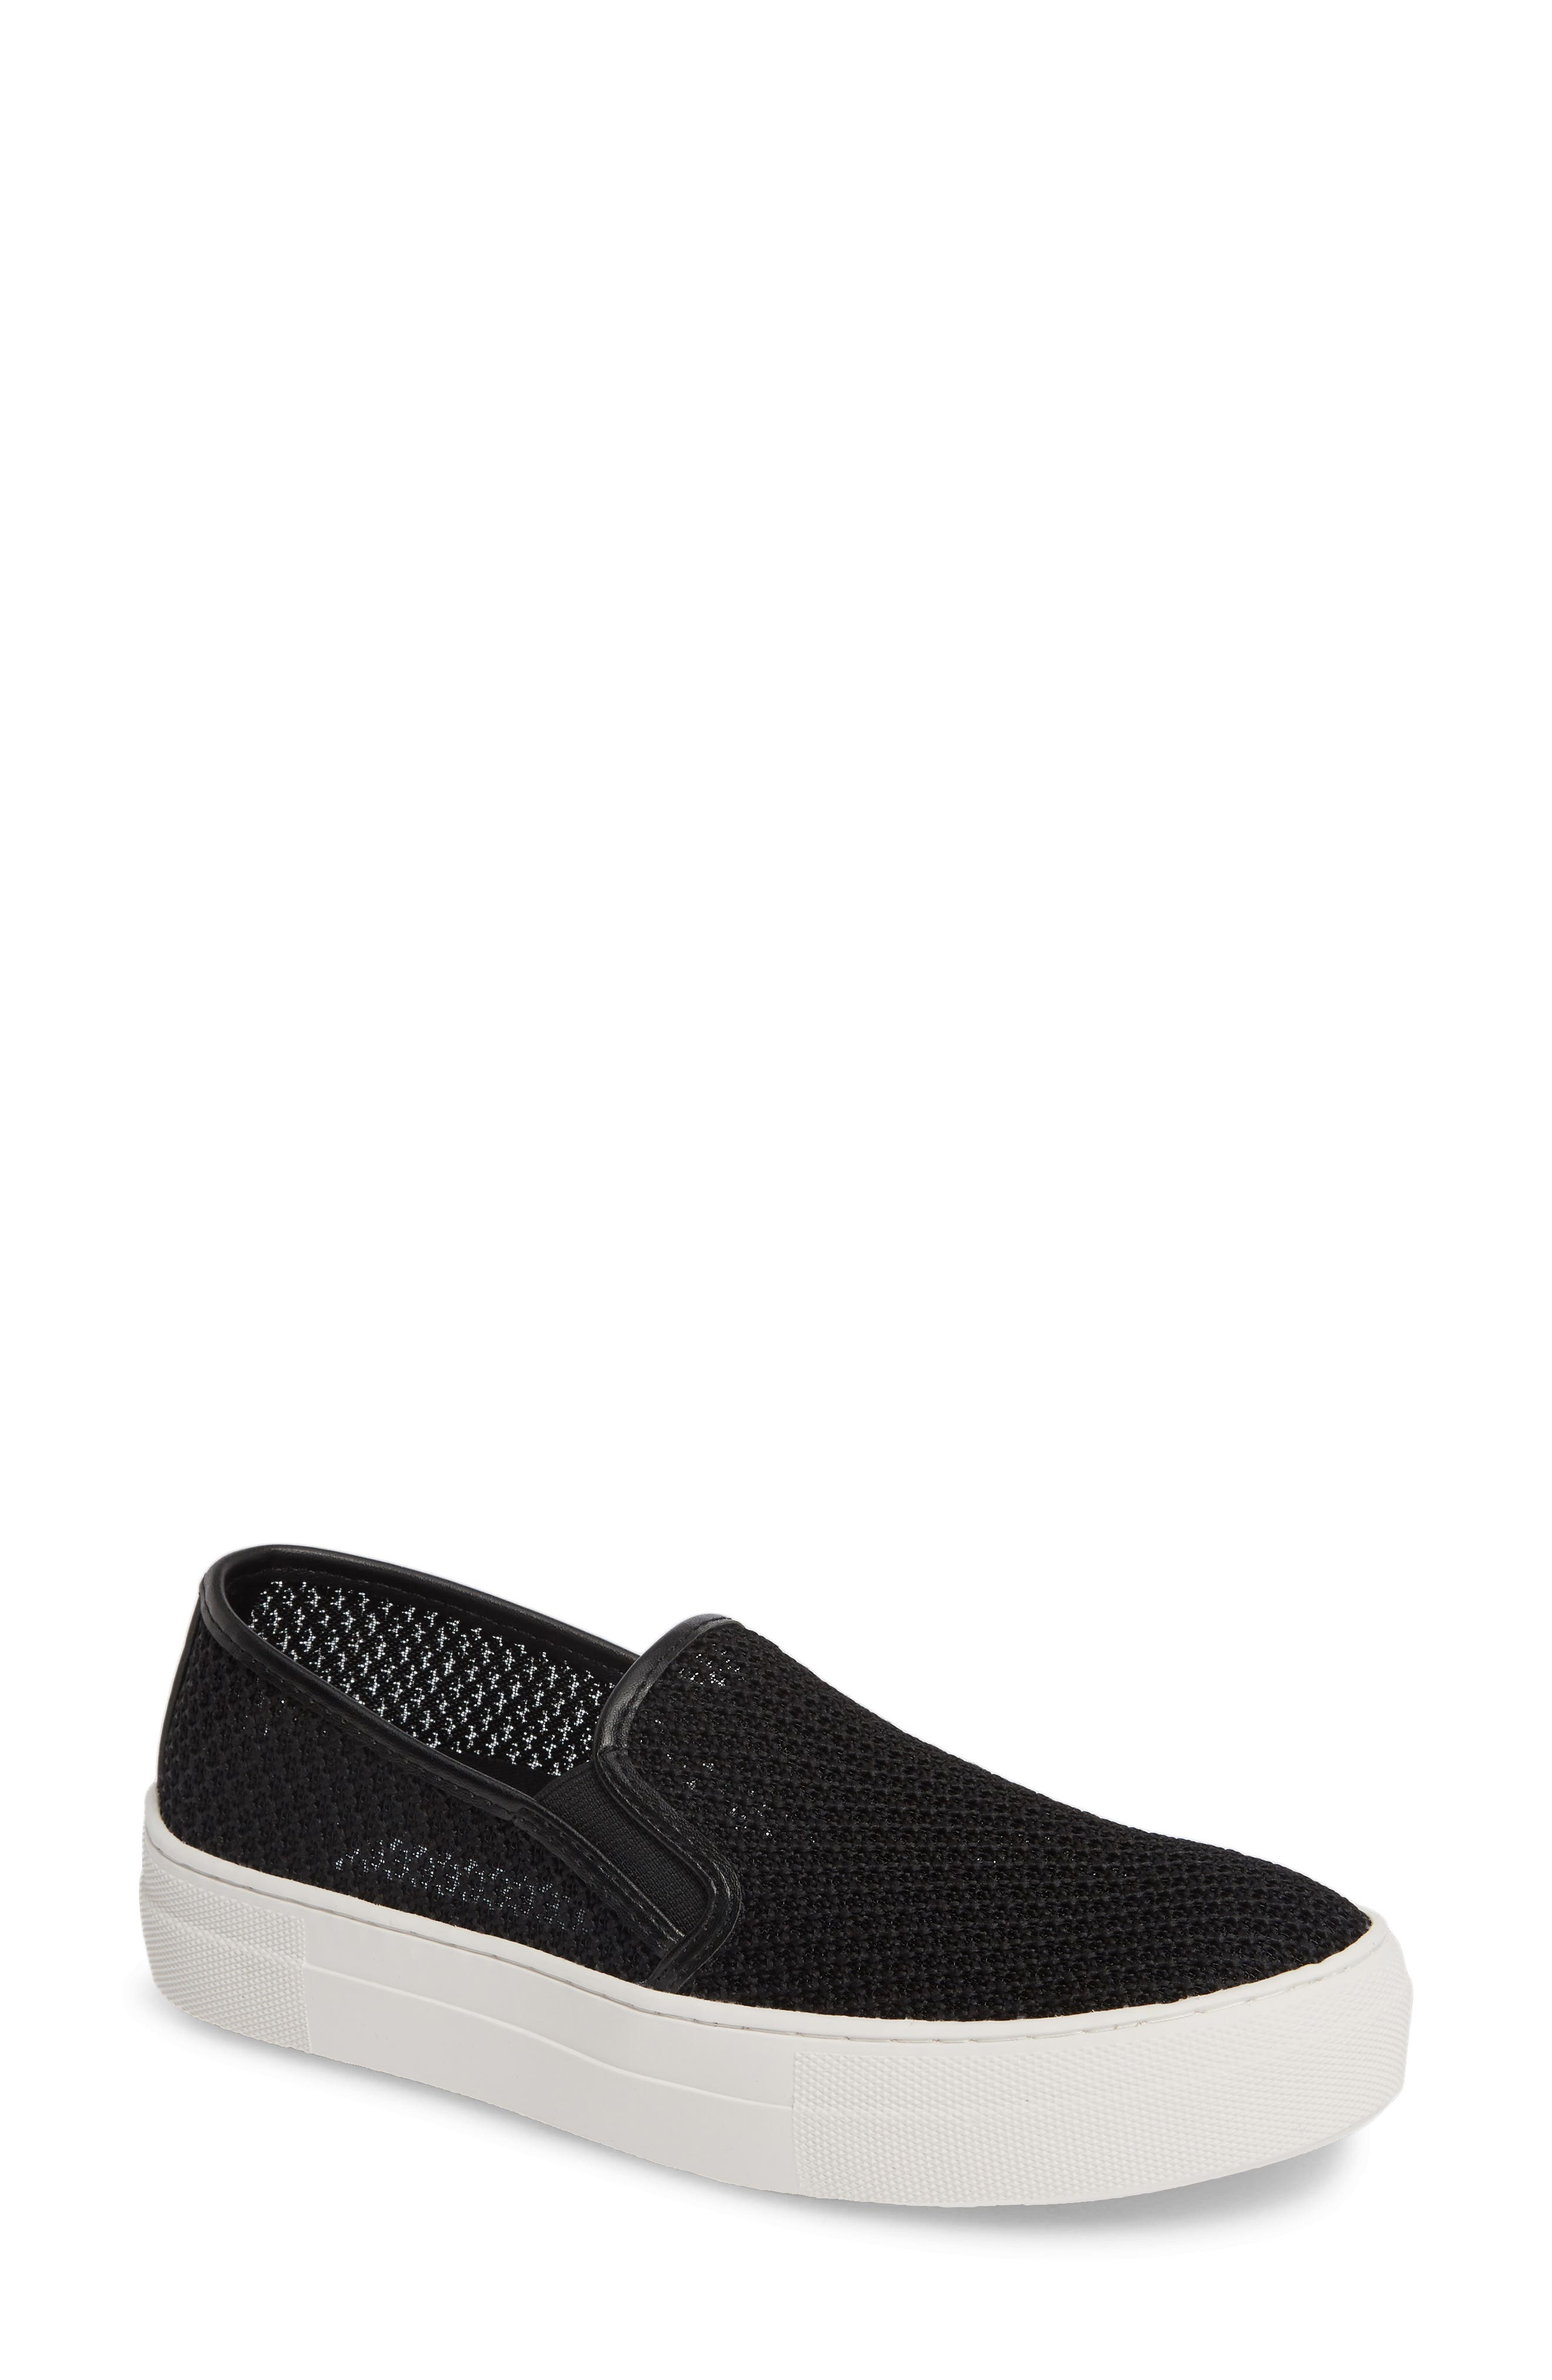 ,                             Gills-M Mesh Slip-On Sneaker,                             Main thumbnail 1, color,                             BLACK